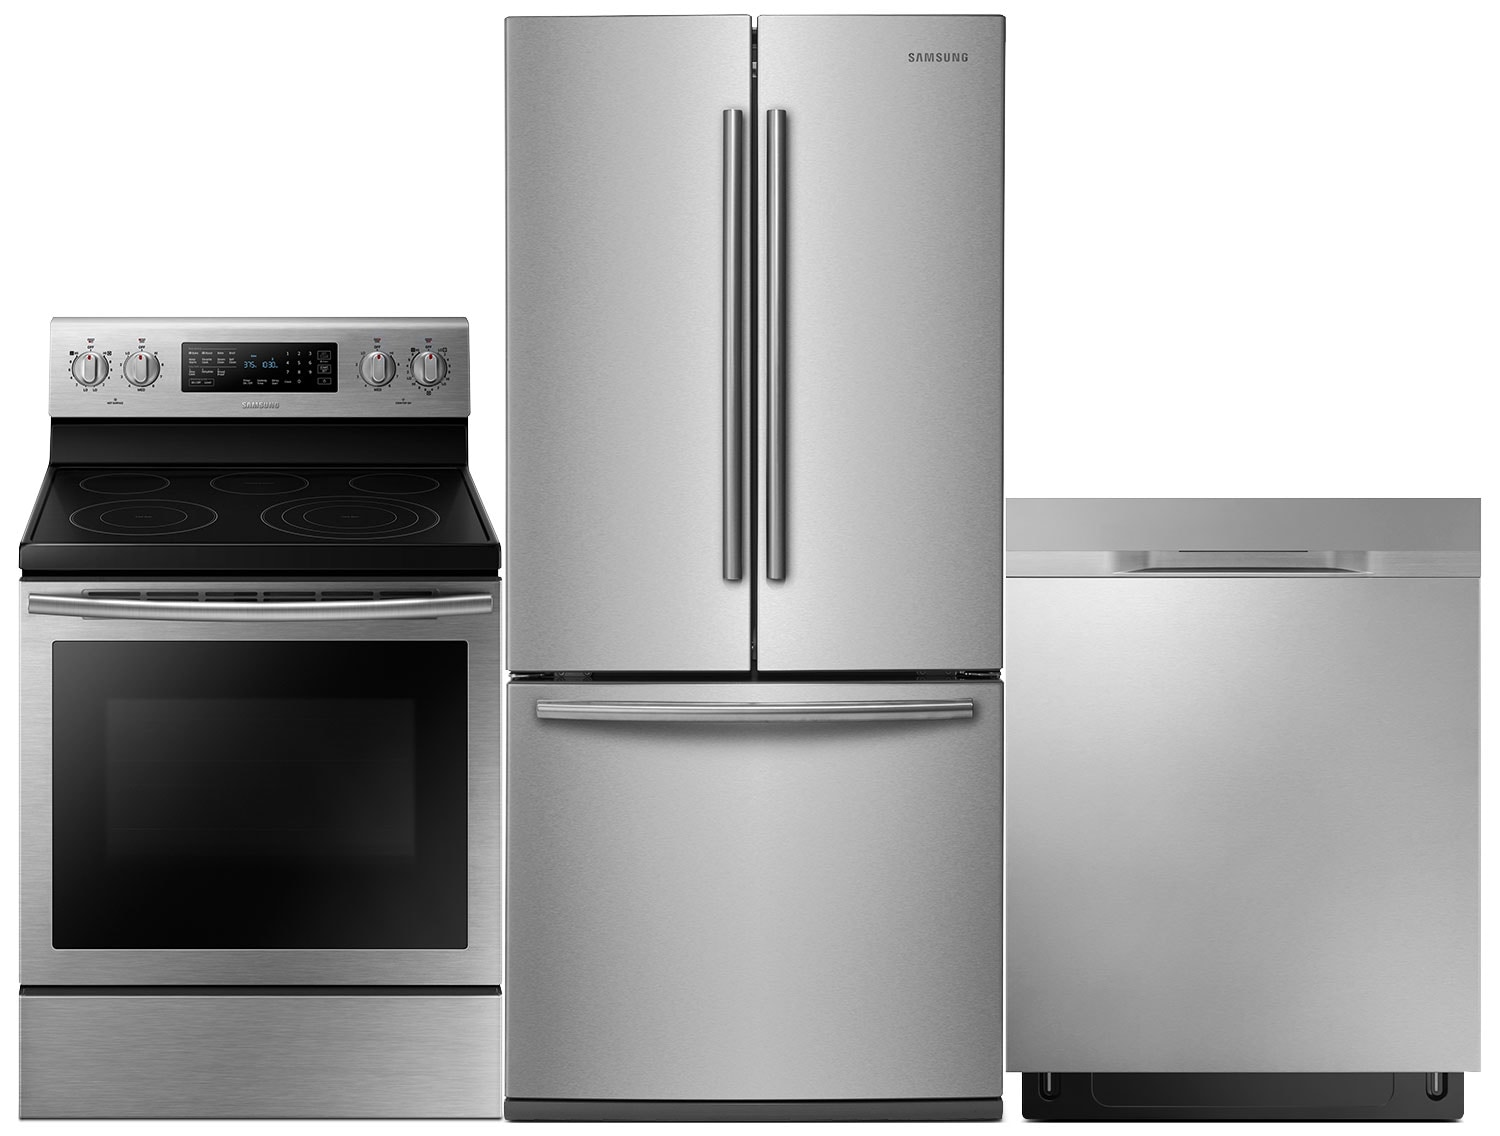 Samsung 22 Cu. Ft. Refrigerator, 5.9 Cu. Ft. Range and Dishwasher with Auto-Open Drying